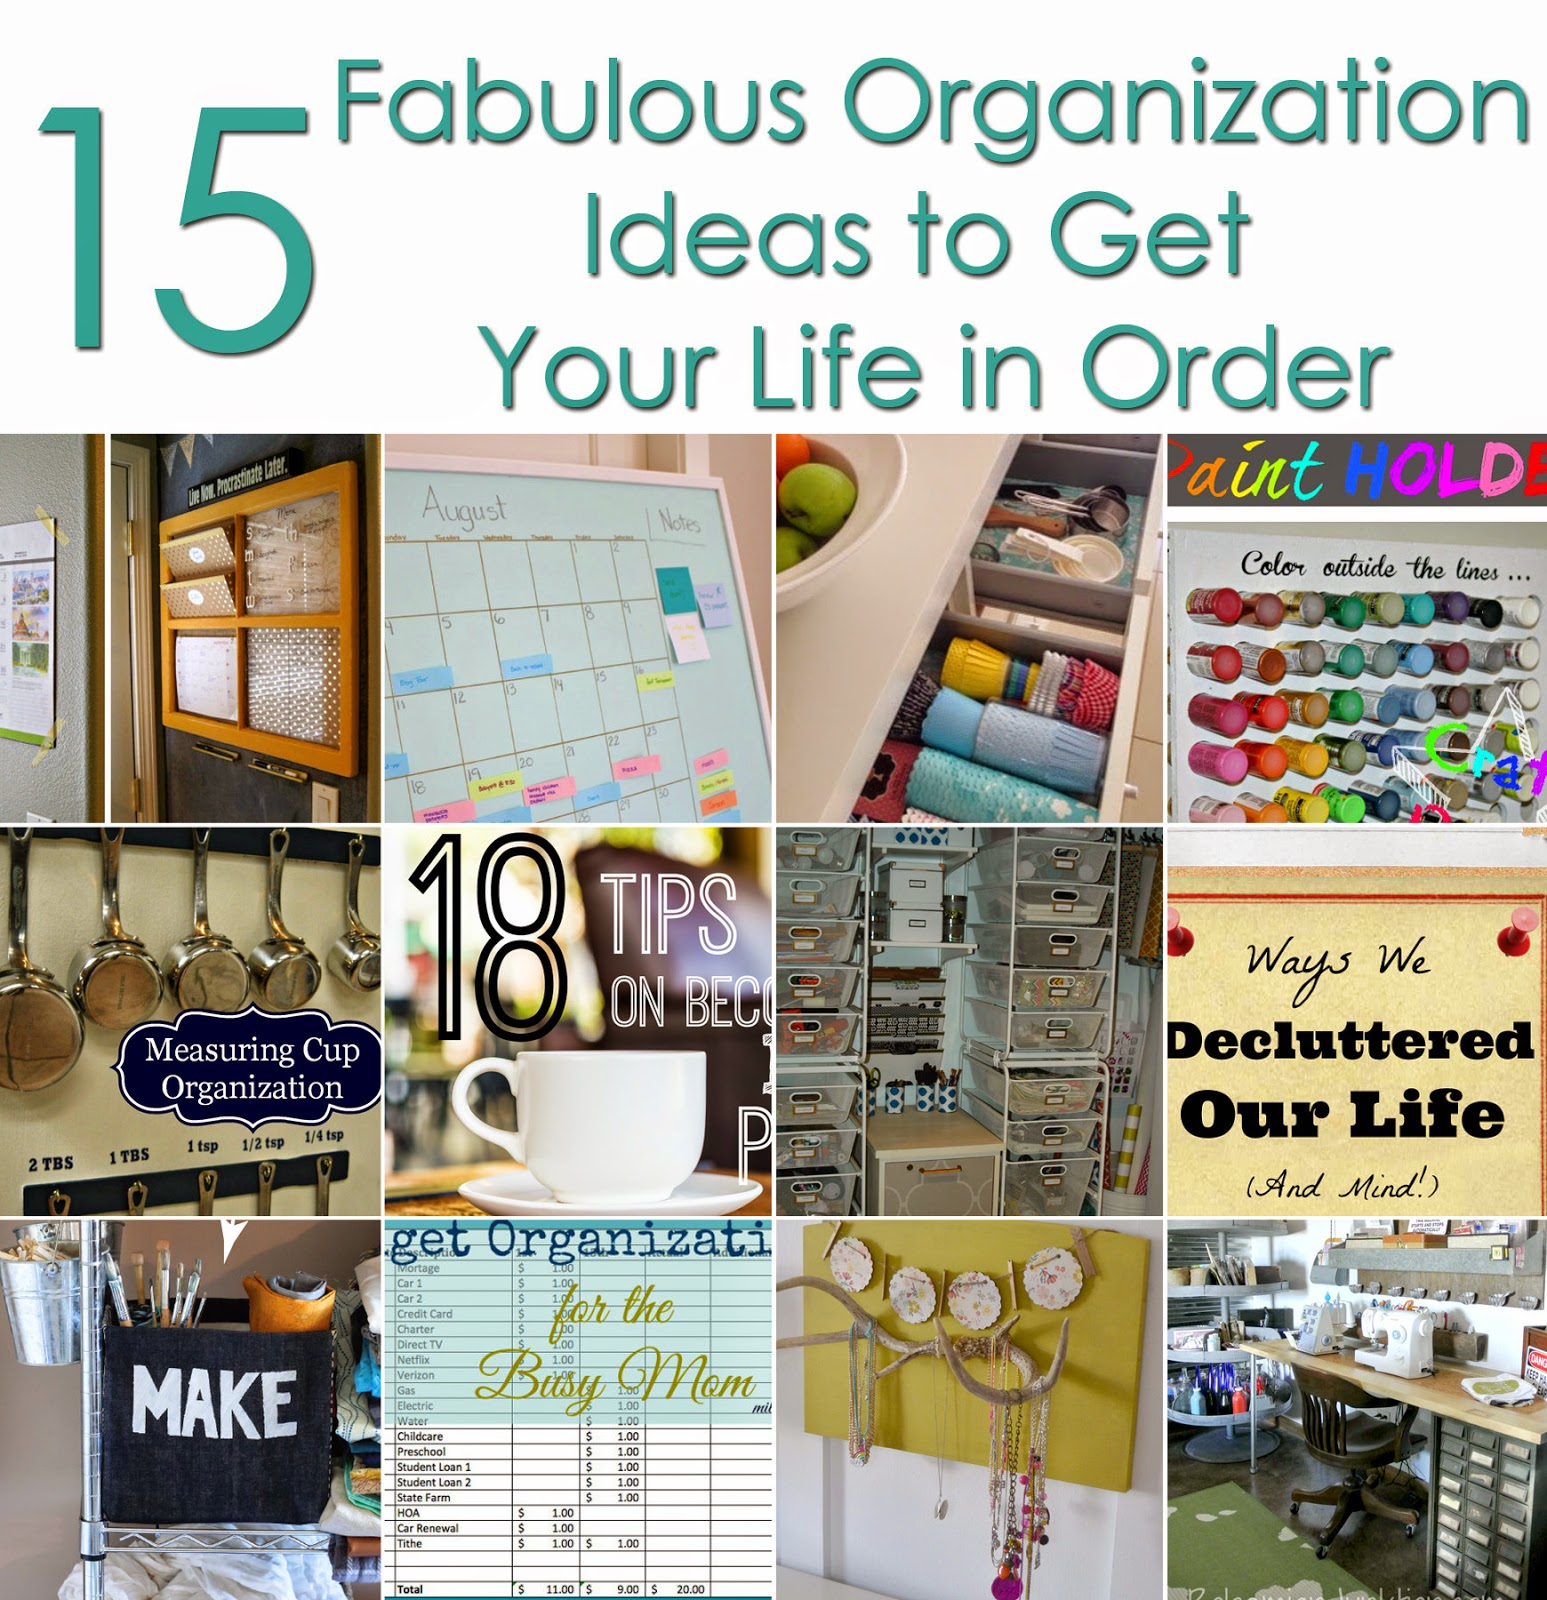 15 Fabulous organization ideas to get your life in order poster.